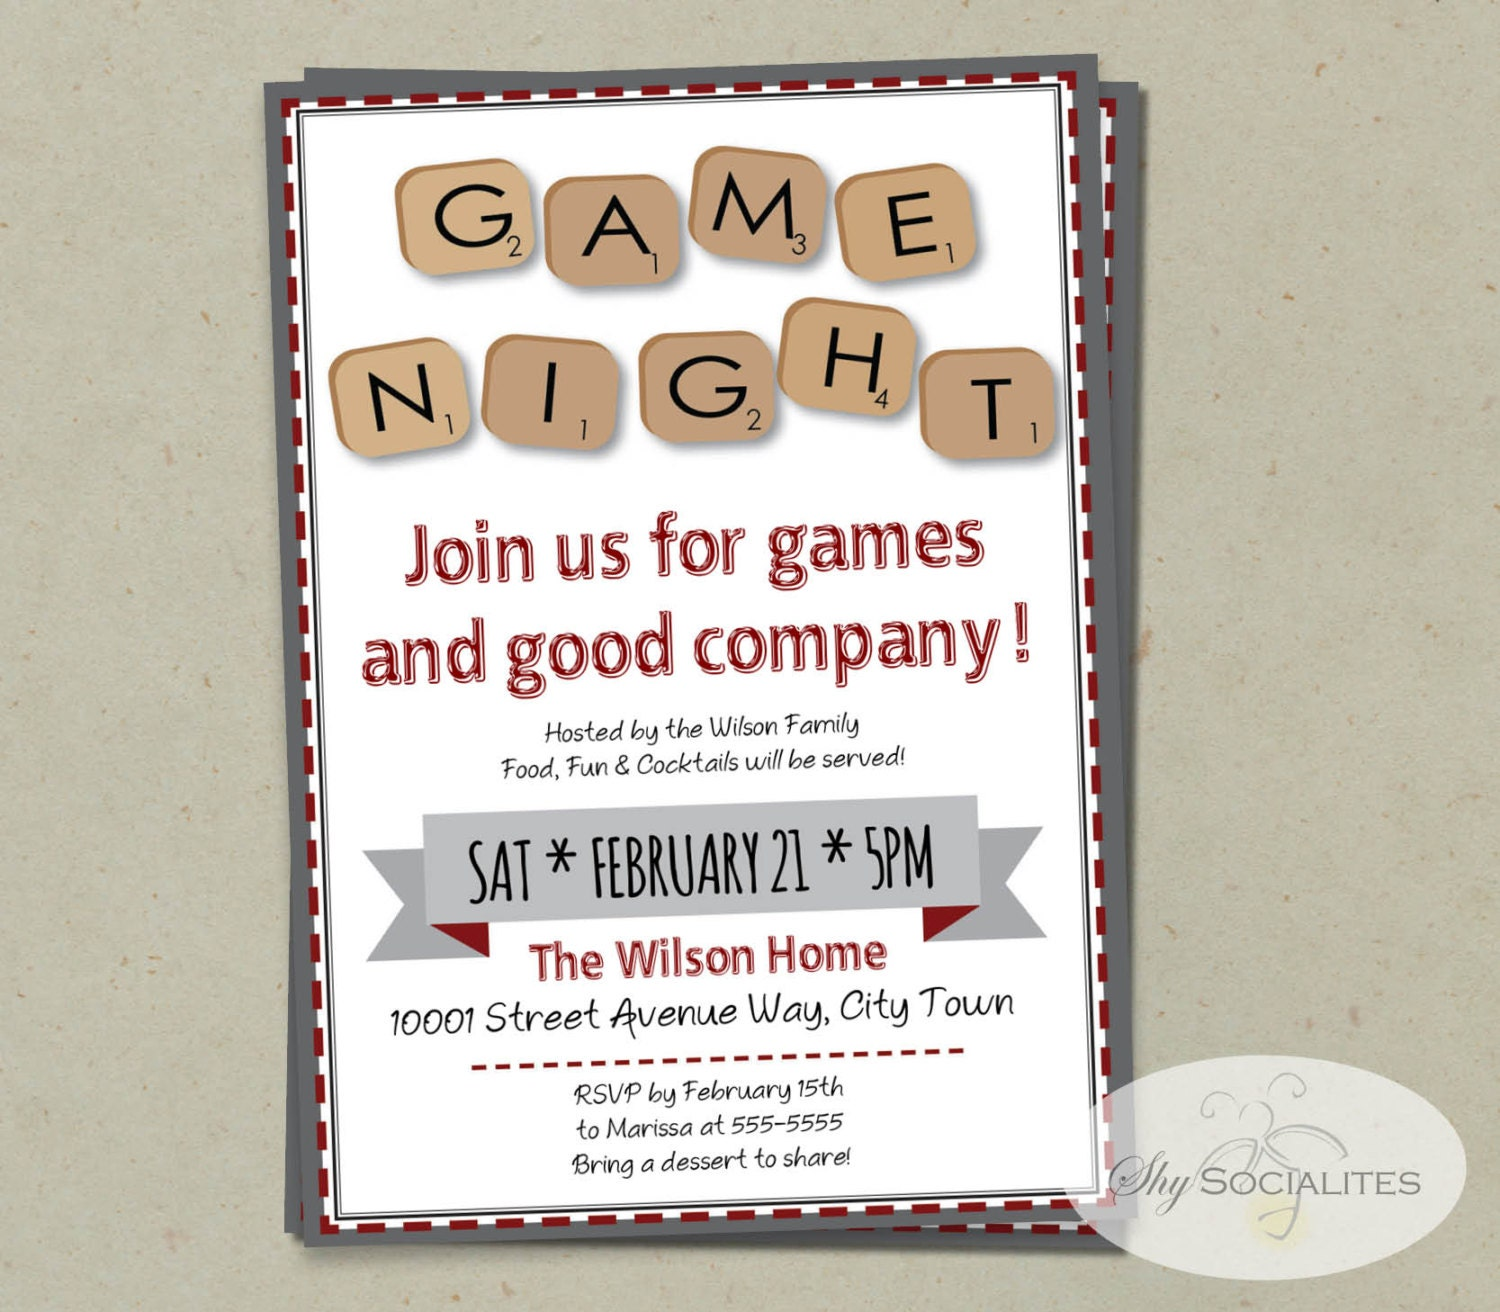 Word Scramble Game Night Invitation Instant Download. Radio Station Website Template. Birthday Invitation Template Word. Power Of Attorney Form Template. Graduate Schools In Georgia. August 2016 Calendar Template. Make Sending A Resume Via Email Sample. Newsletter Template For Word. Formal Event Invitation